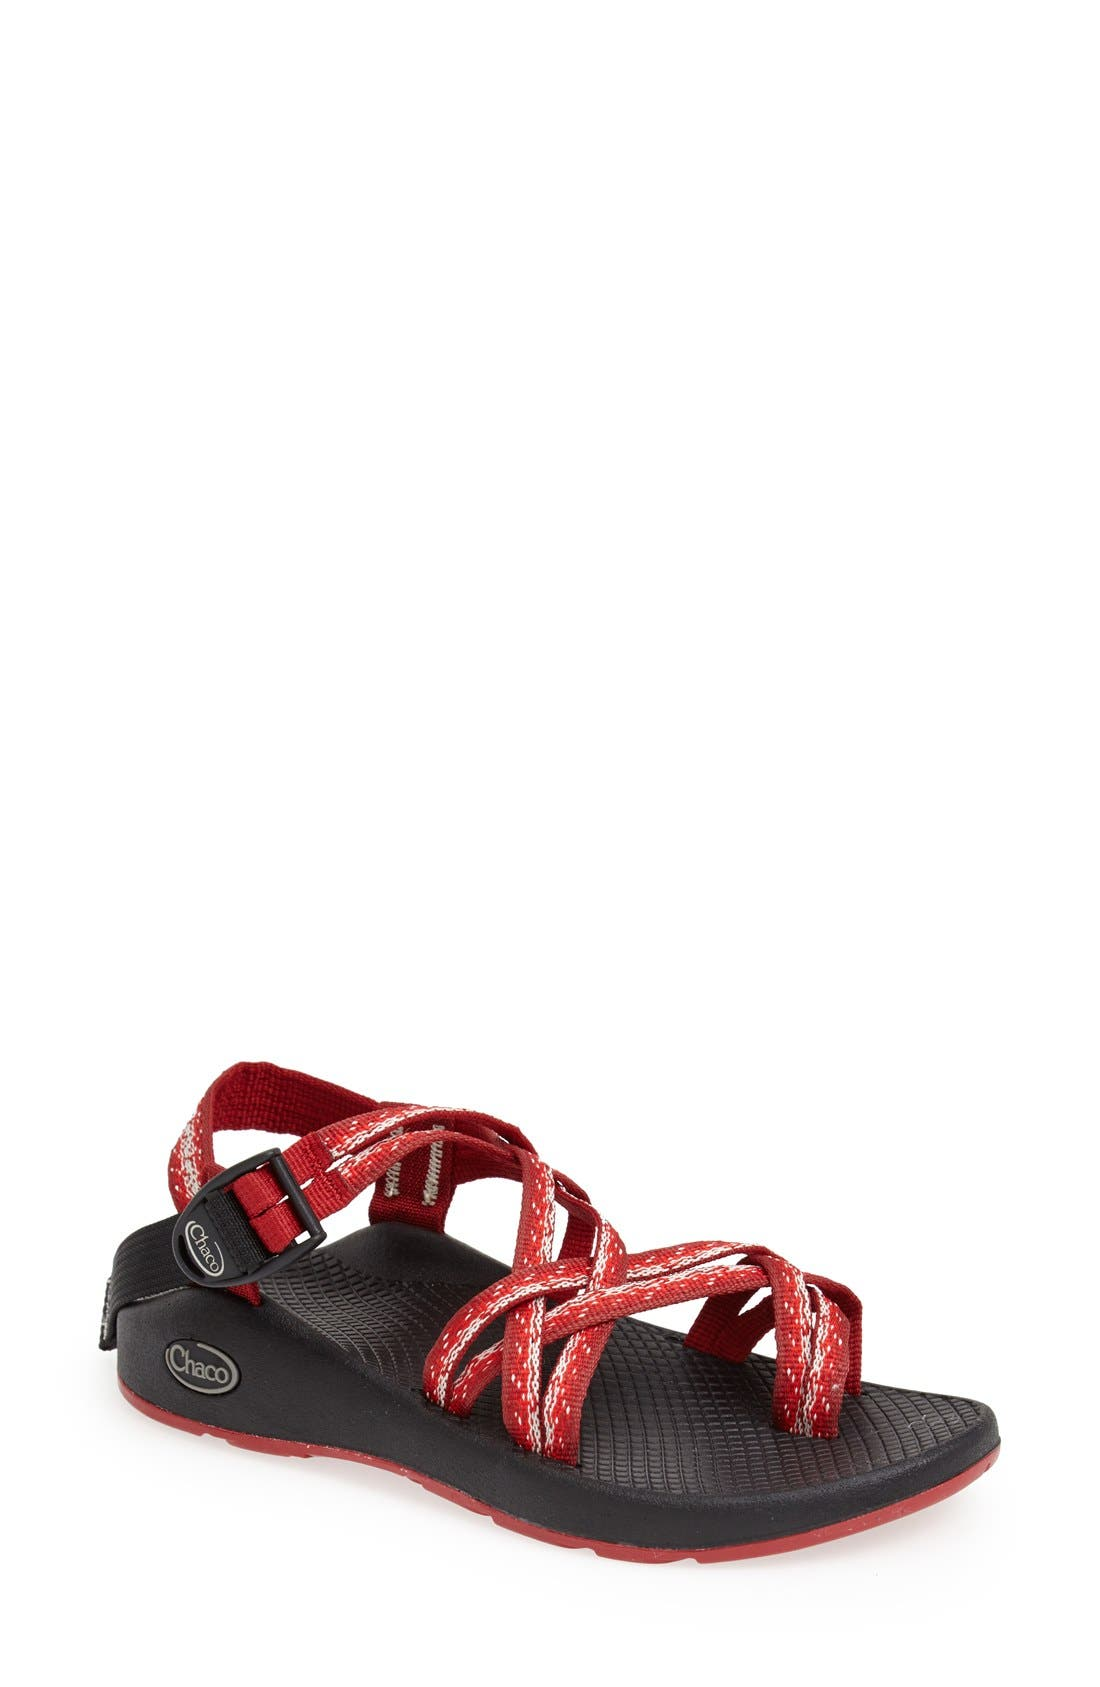 Alternate Image 1 Selected - Chaco 'ZX2 Yampa' Sandal (Women)